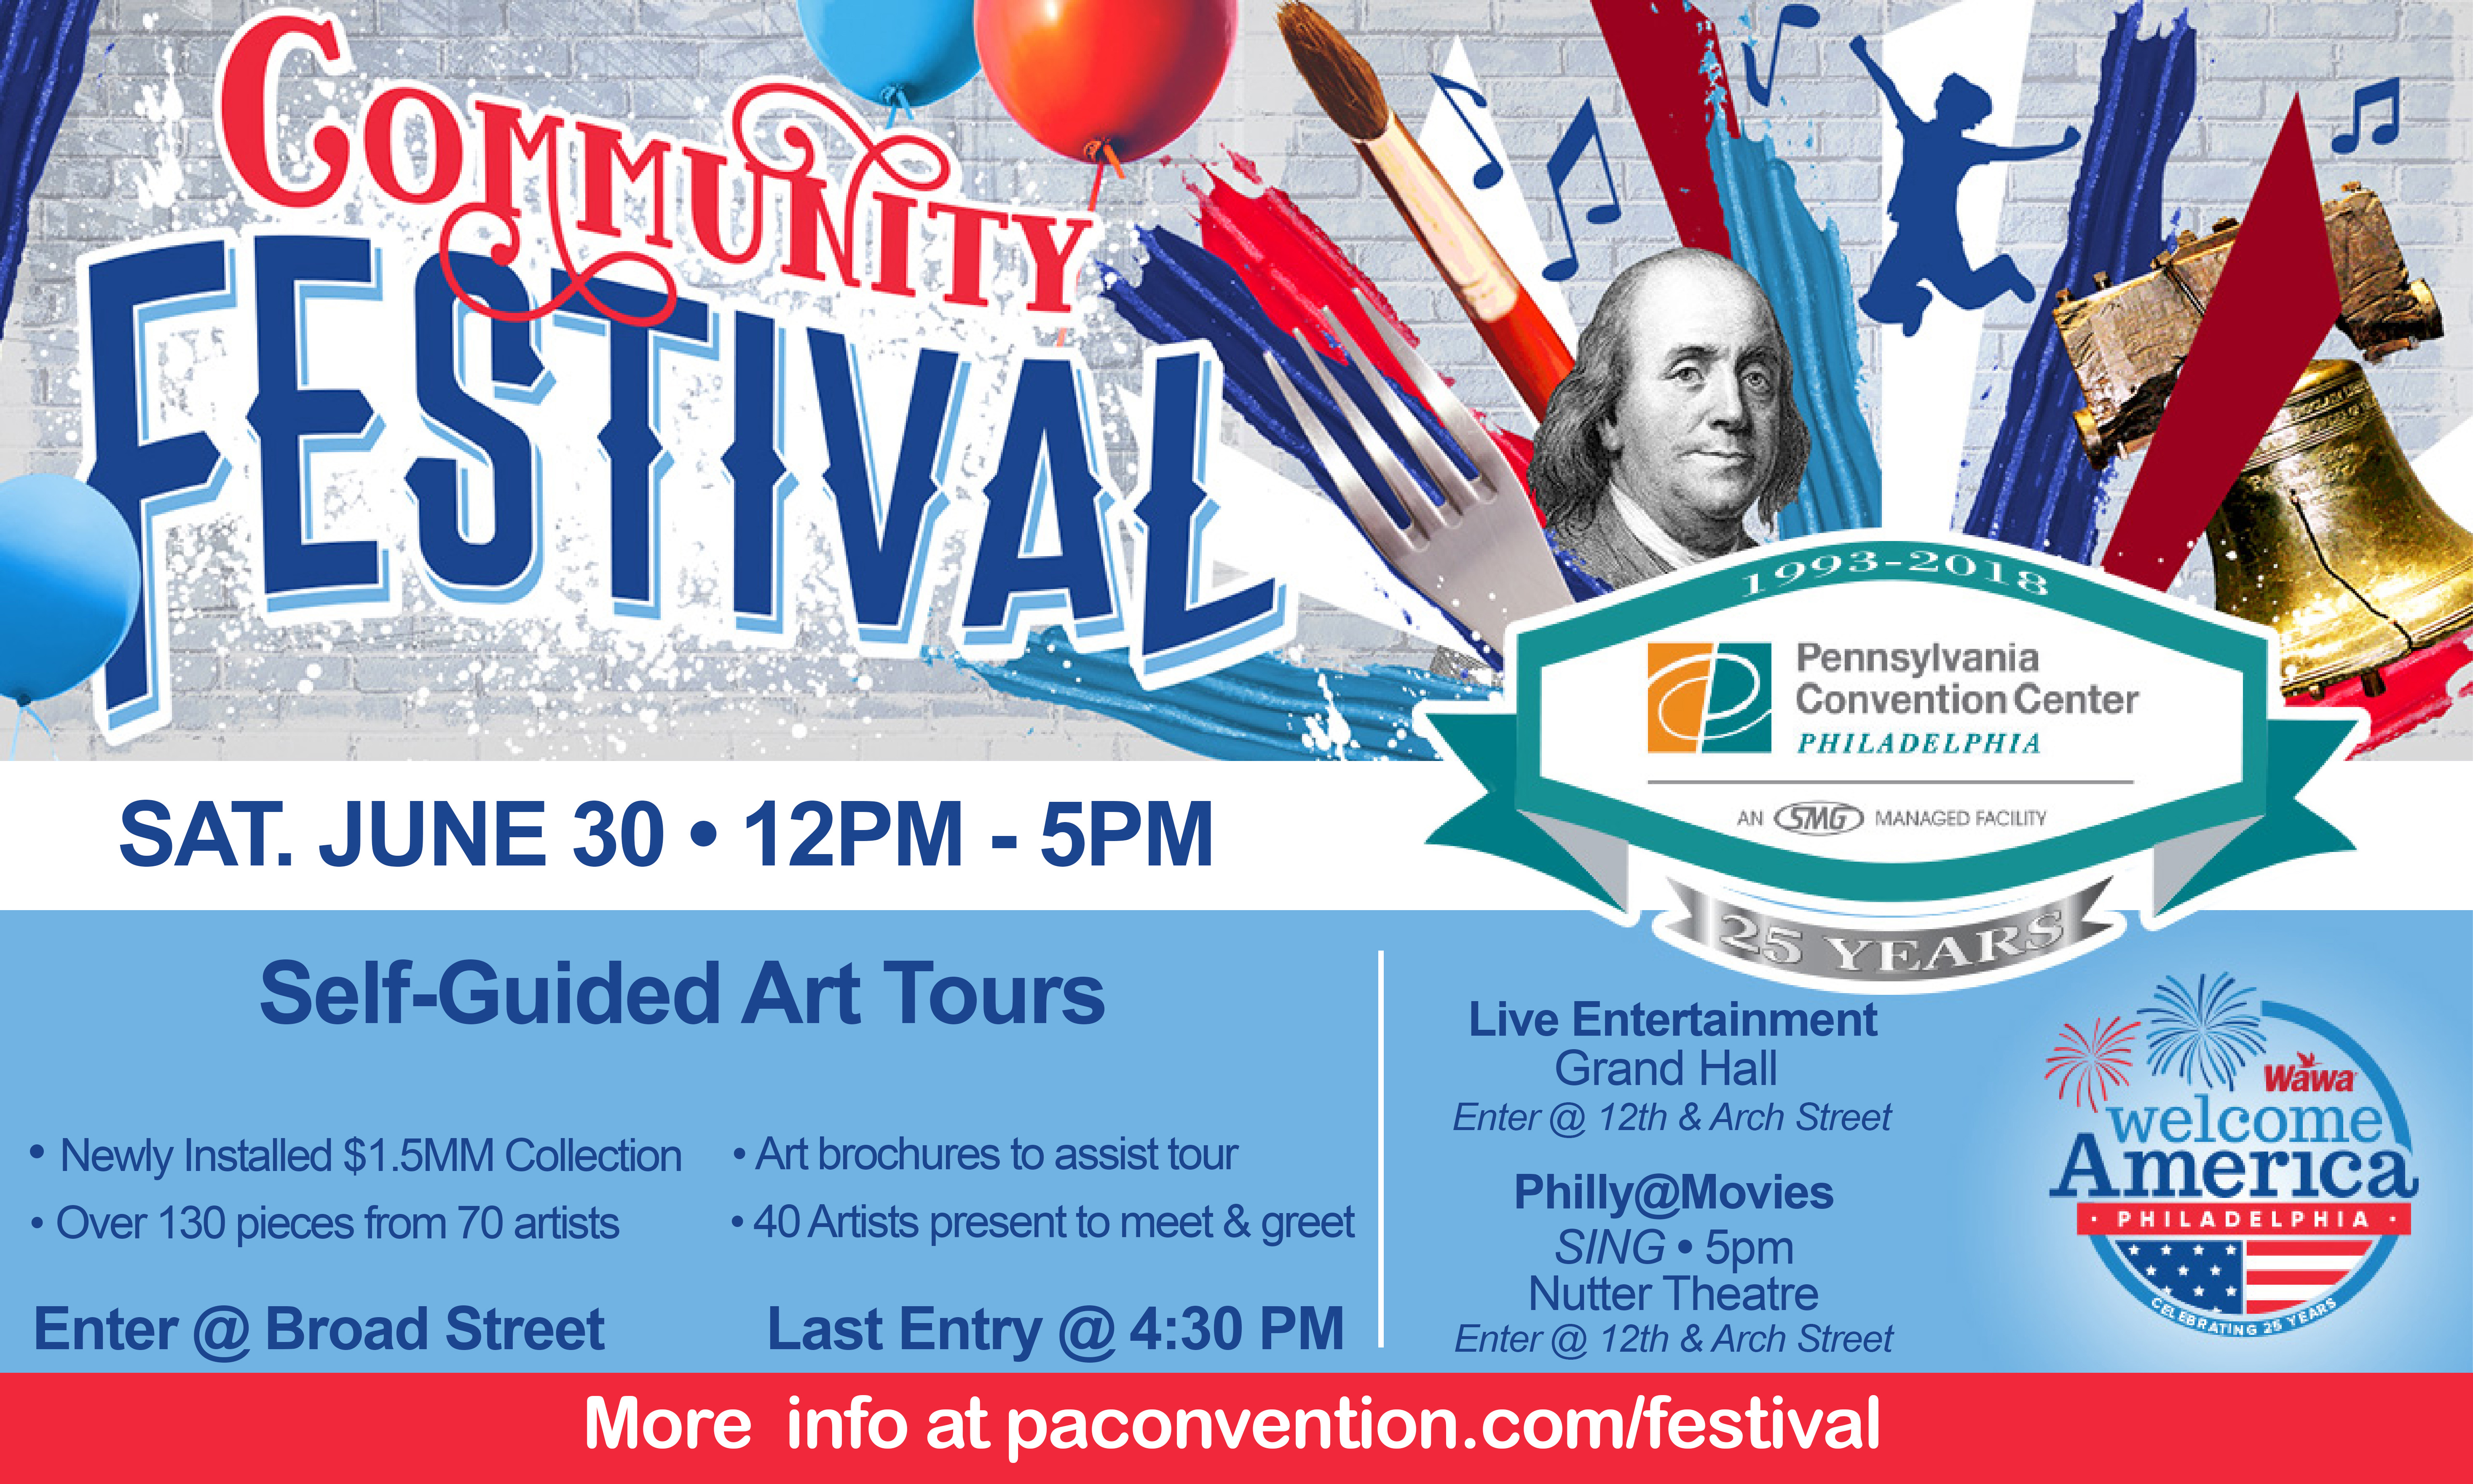 CC PACC June 30th West Wing Art Tours Ad_festival